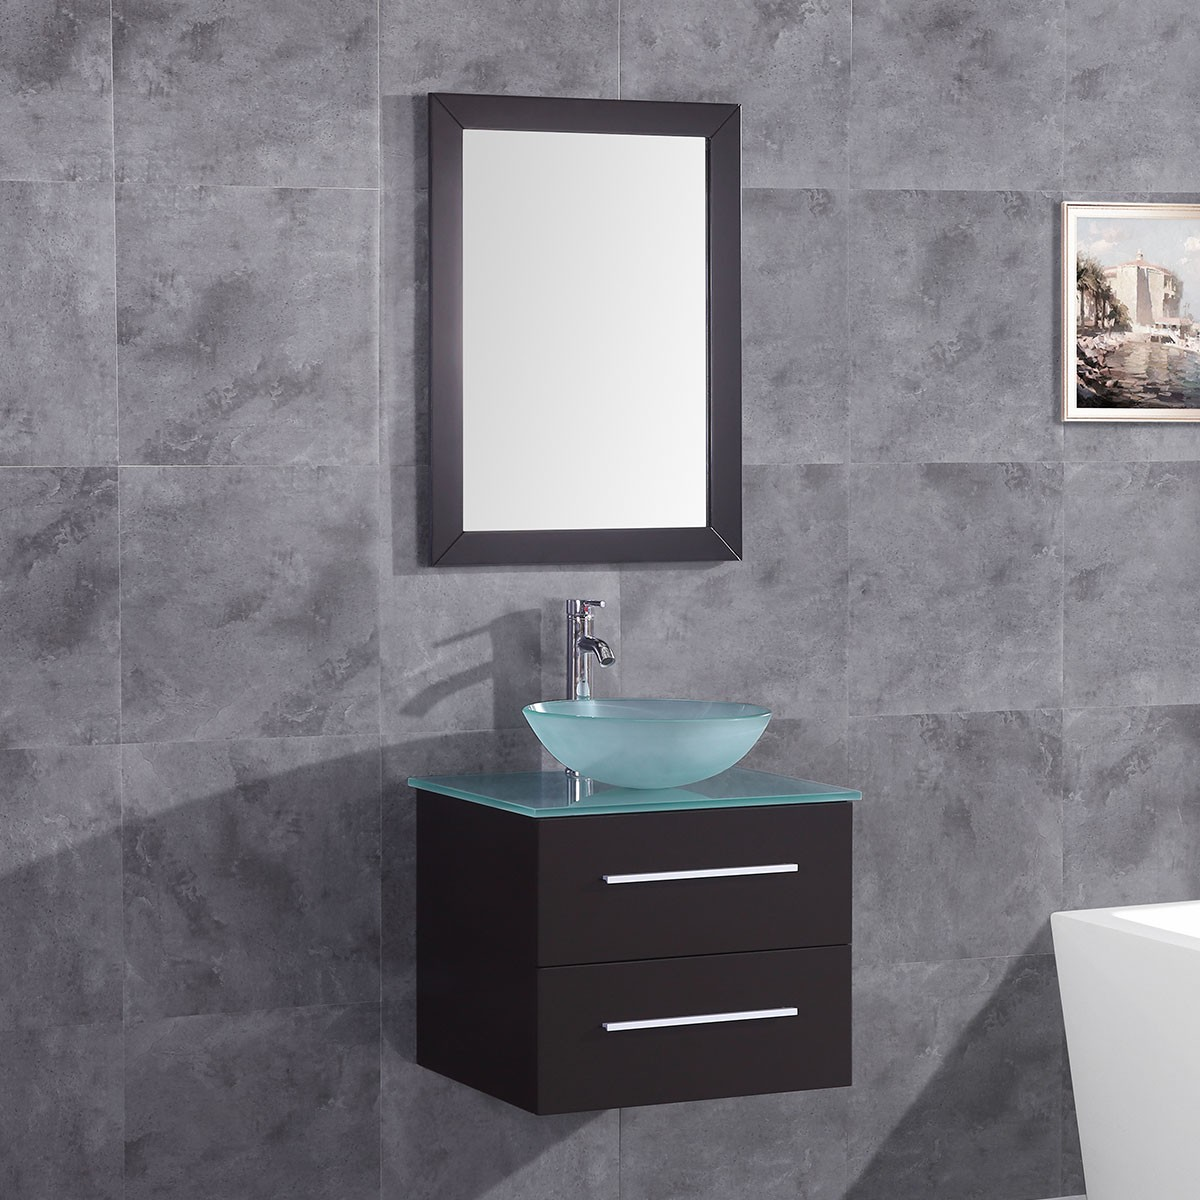 24 In. Plywood Vanity Set with Basin and Mirror (DK-T9190-SET)